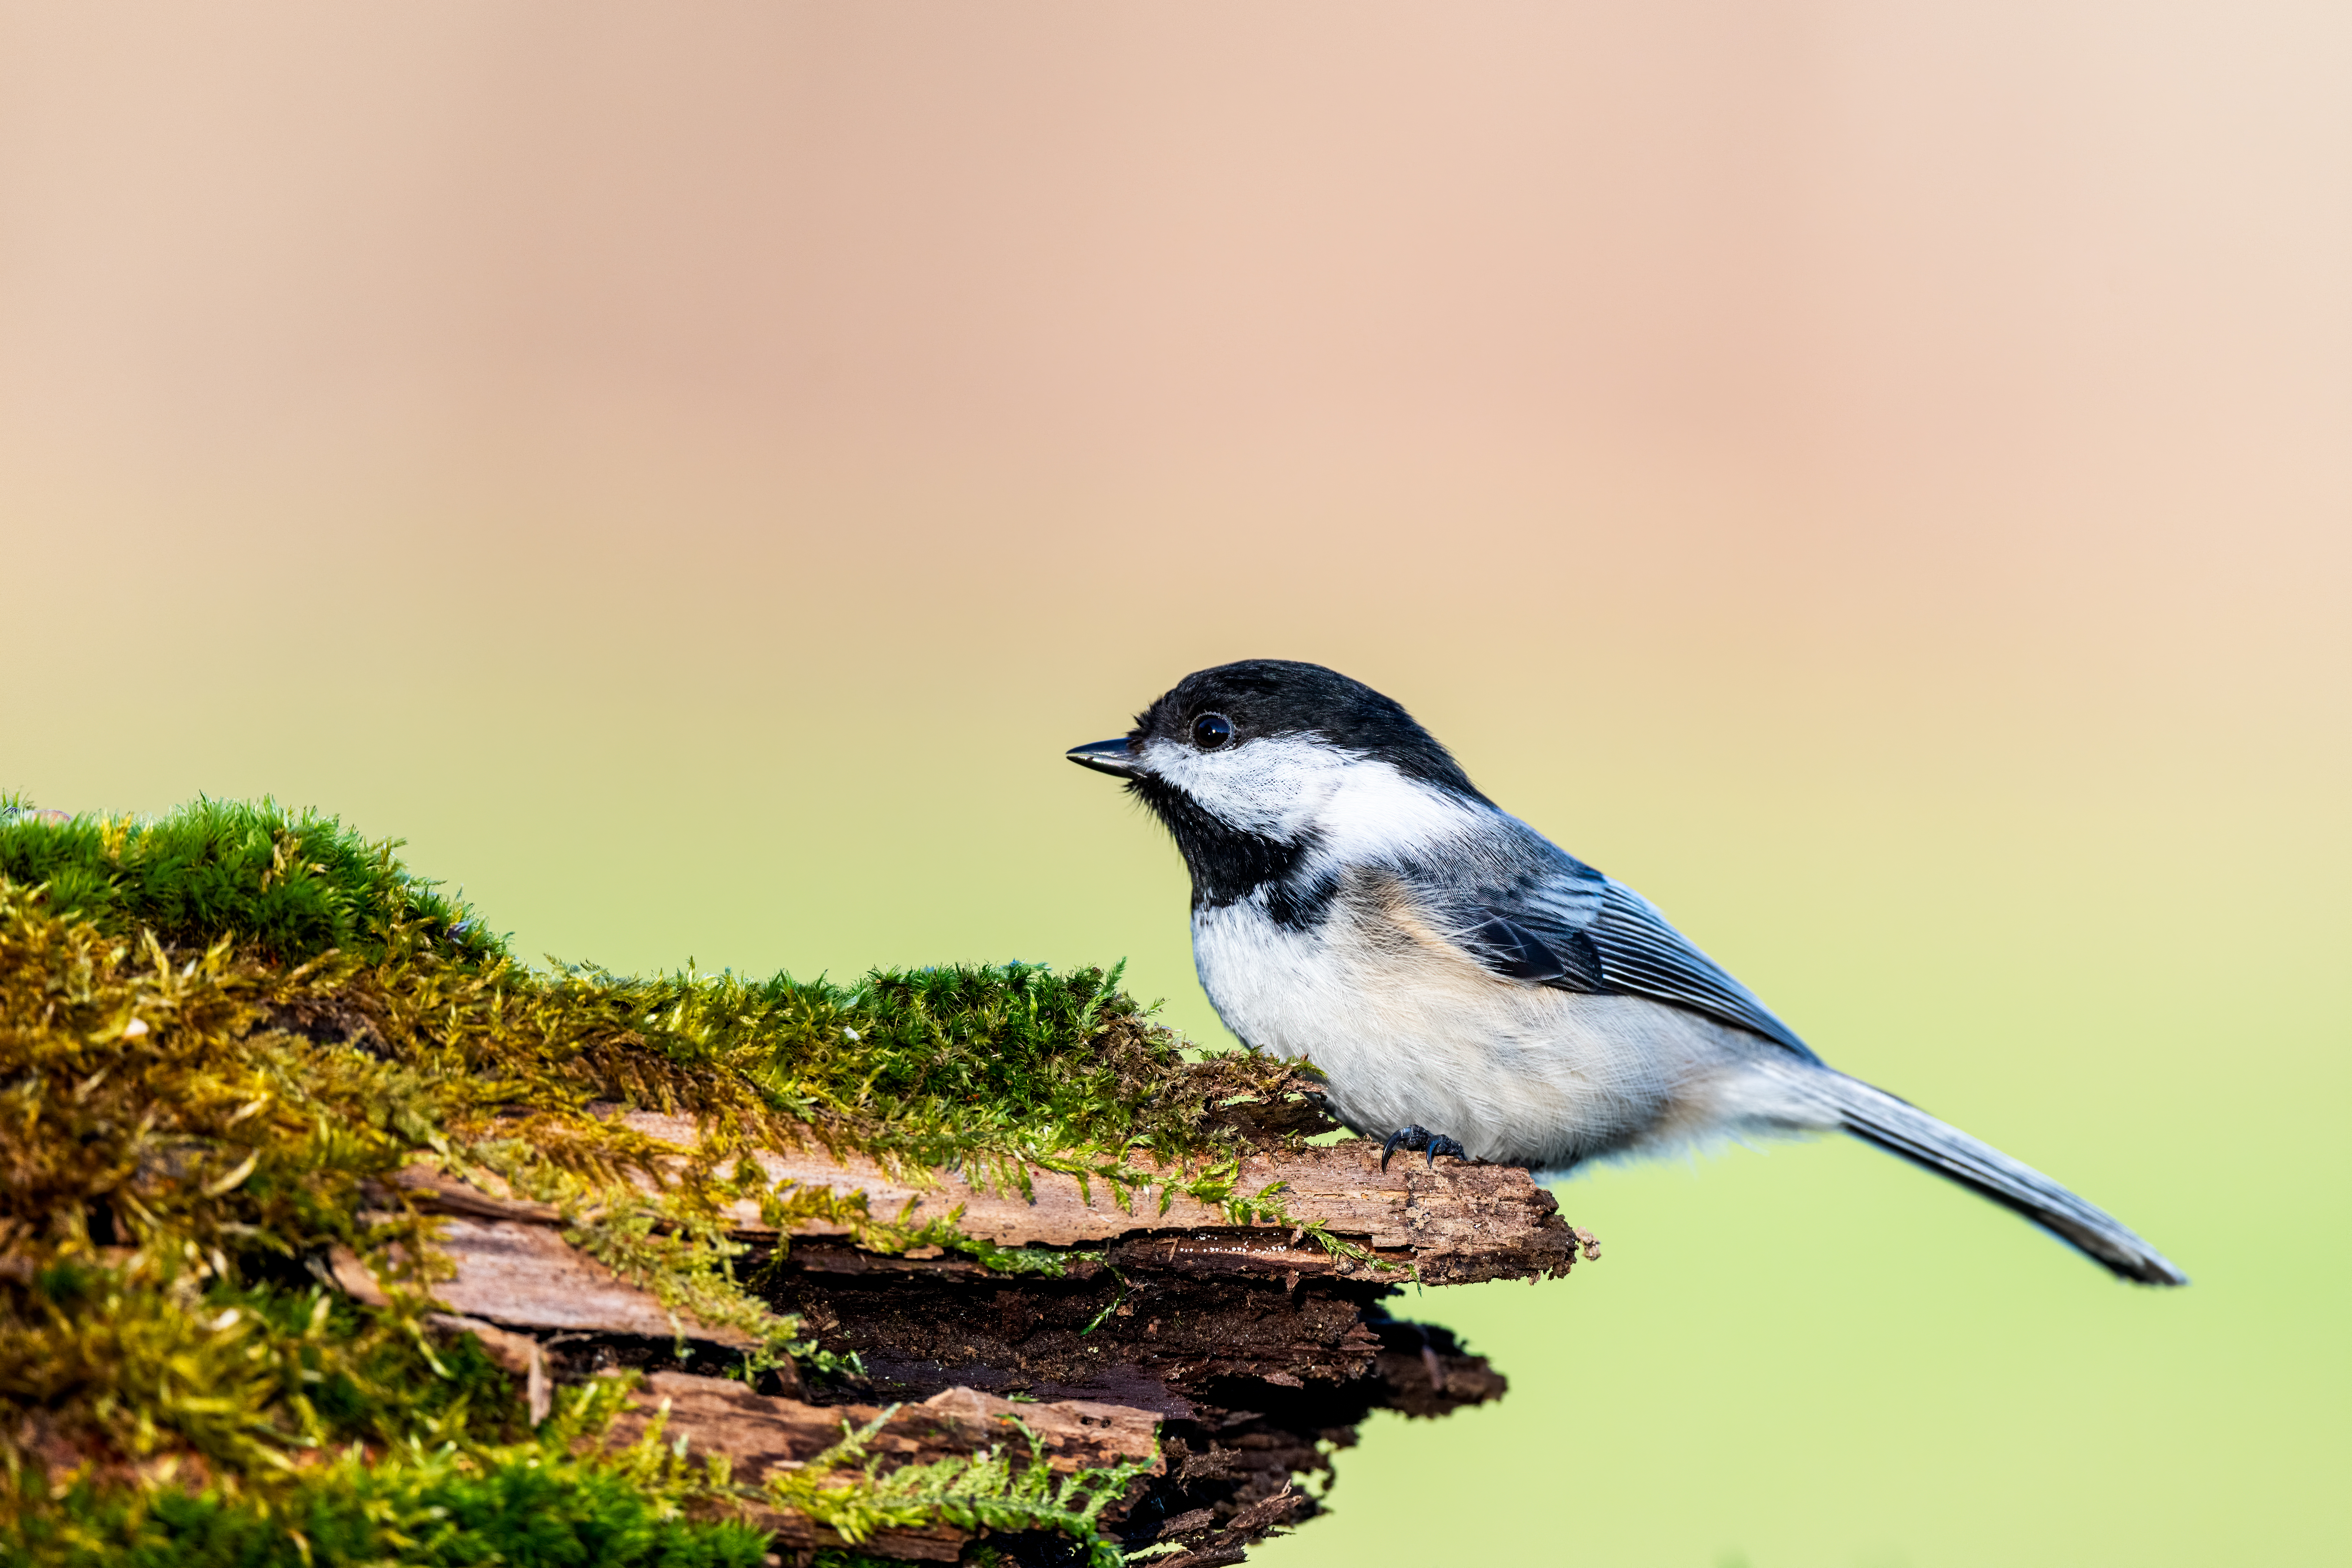 Black capped chickadee on mossy tree trunk